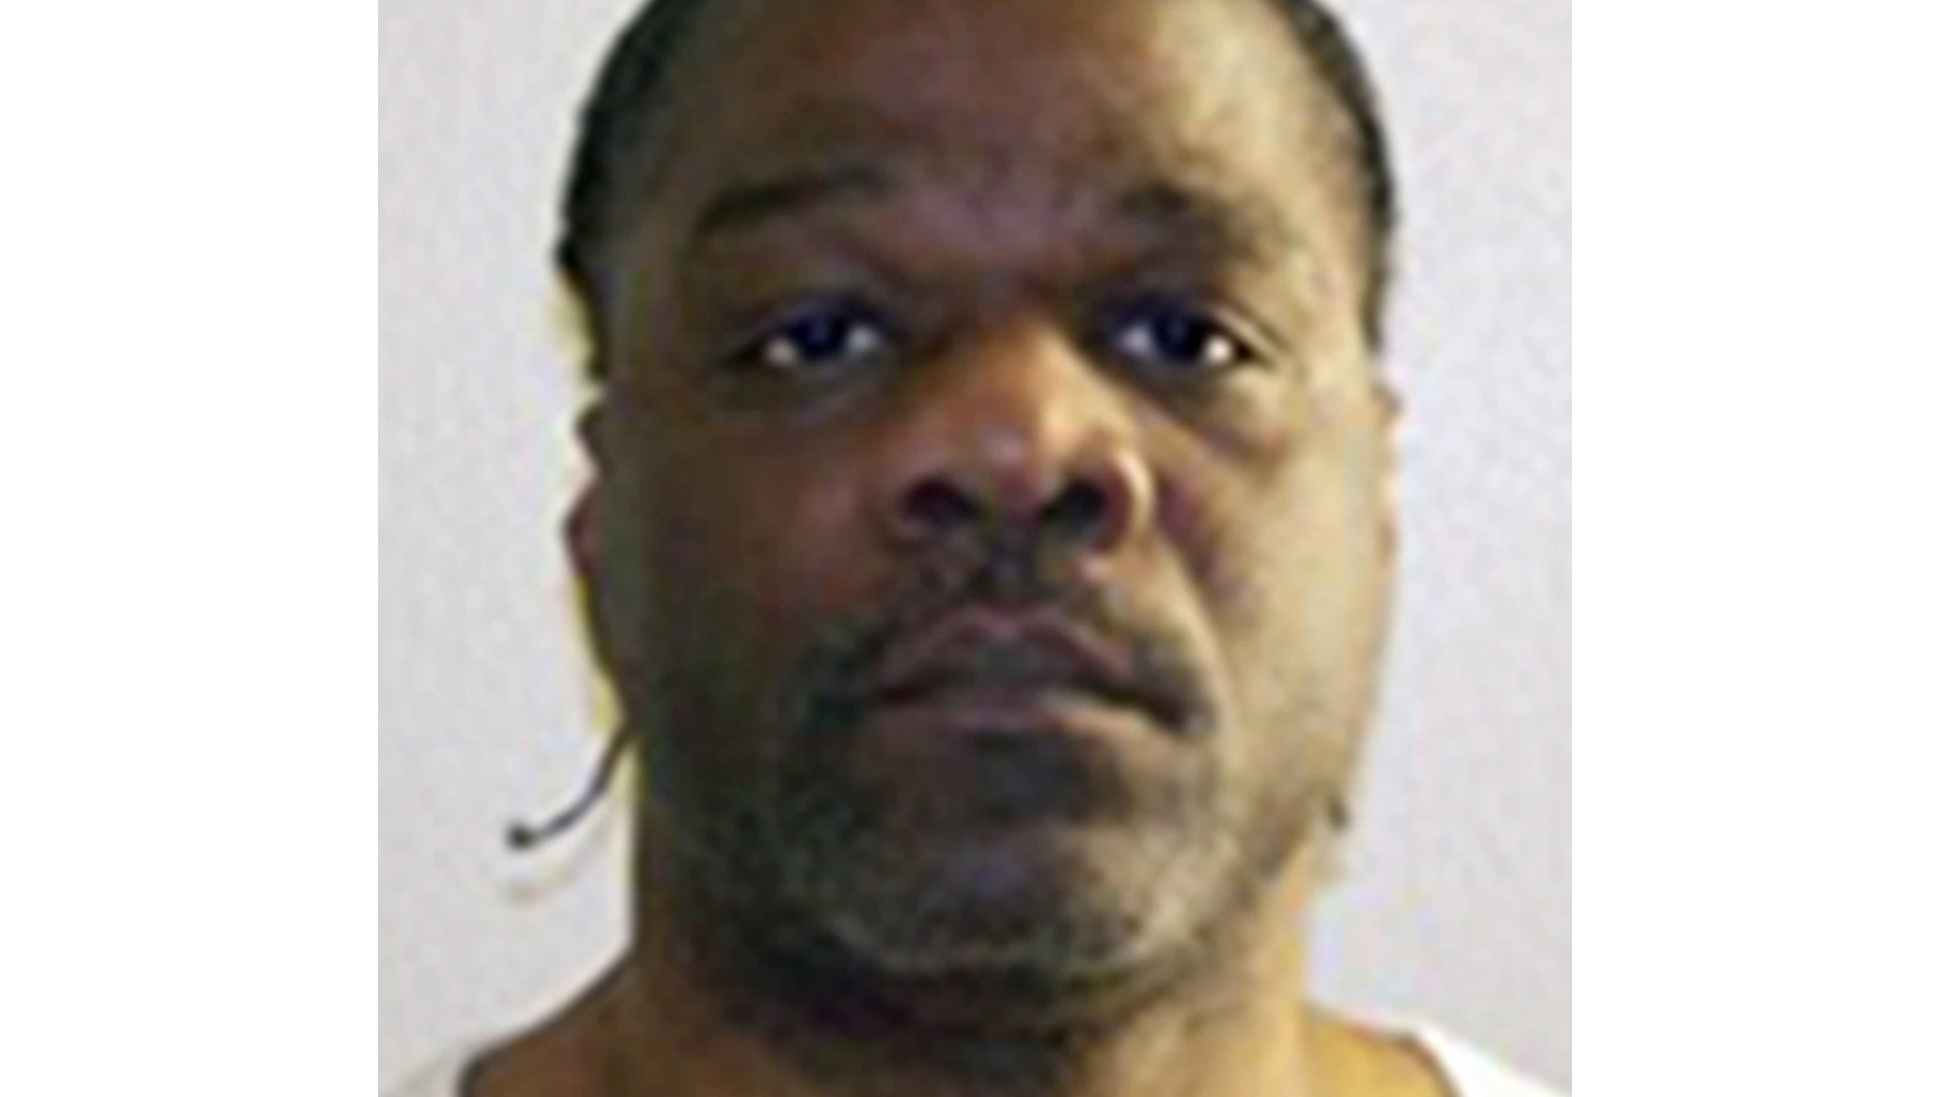 Arkansas conducts first execution since 2005, plans 3 more